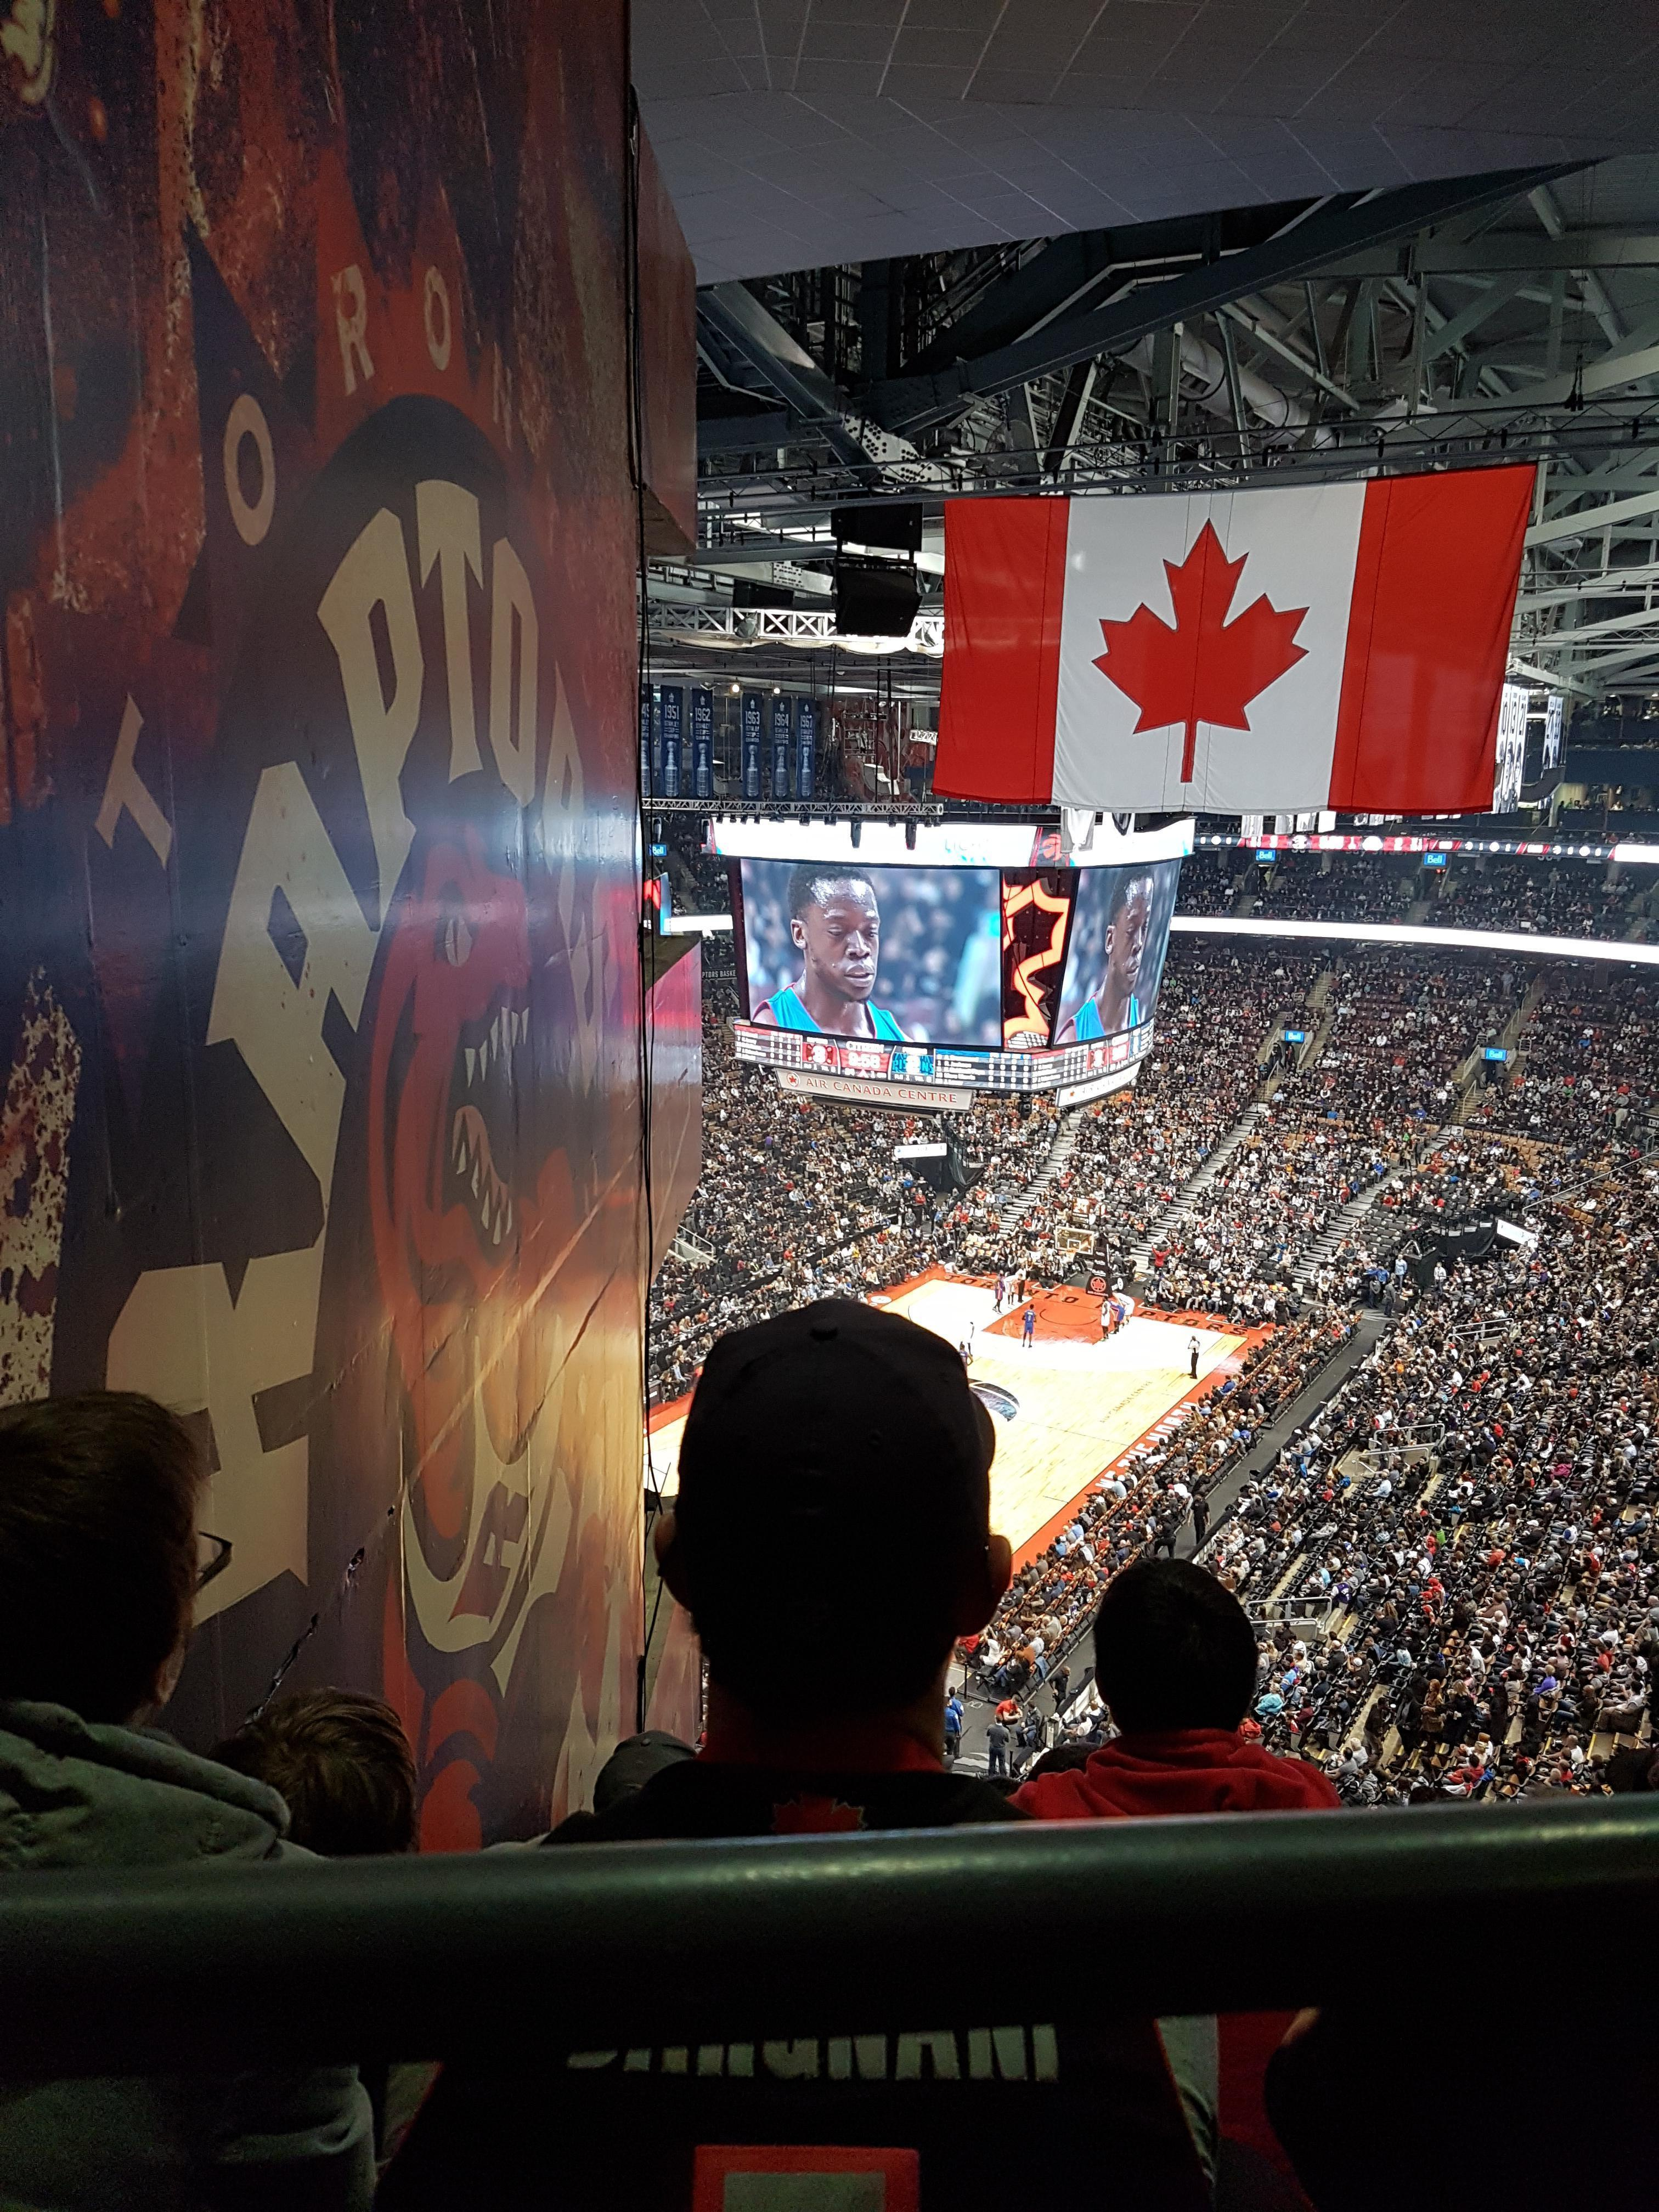 Scotiabank Arena Section 313 Row 15 Seat 10